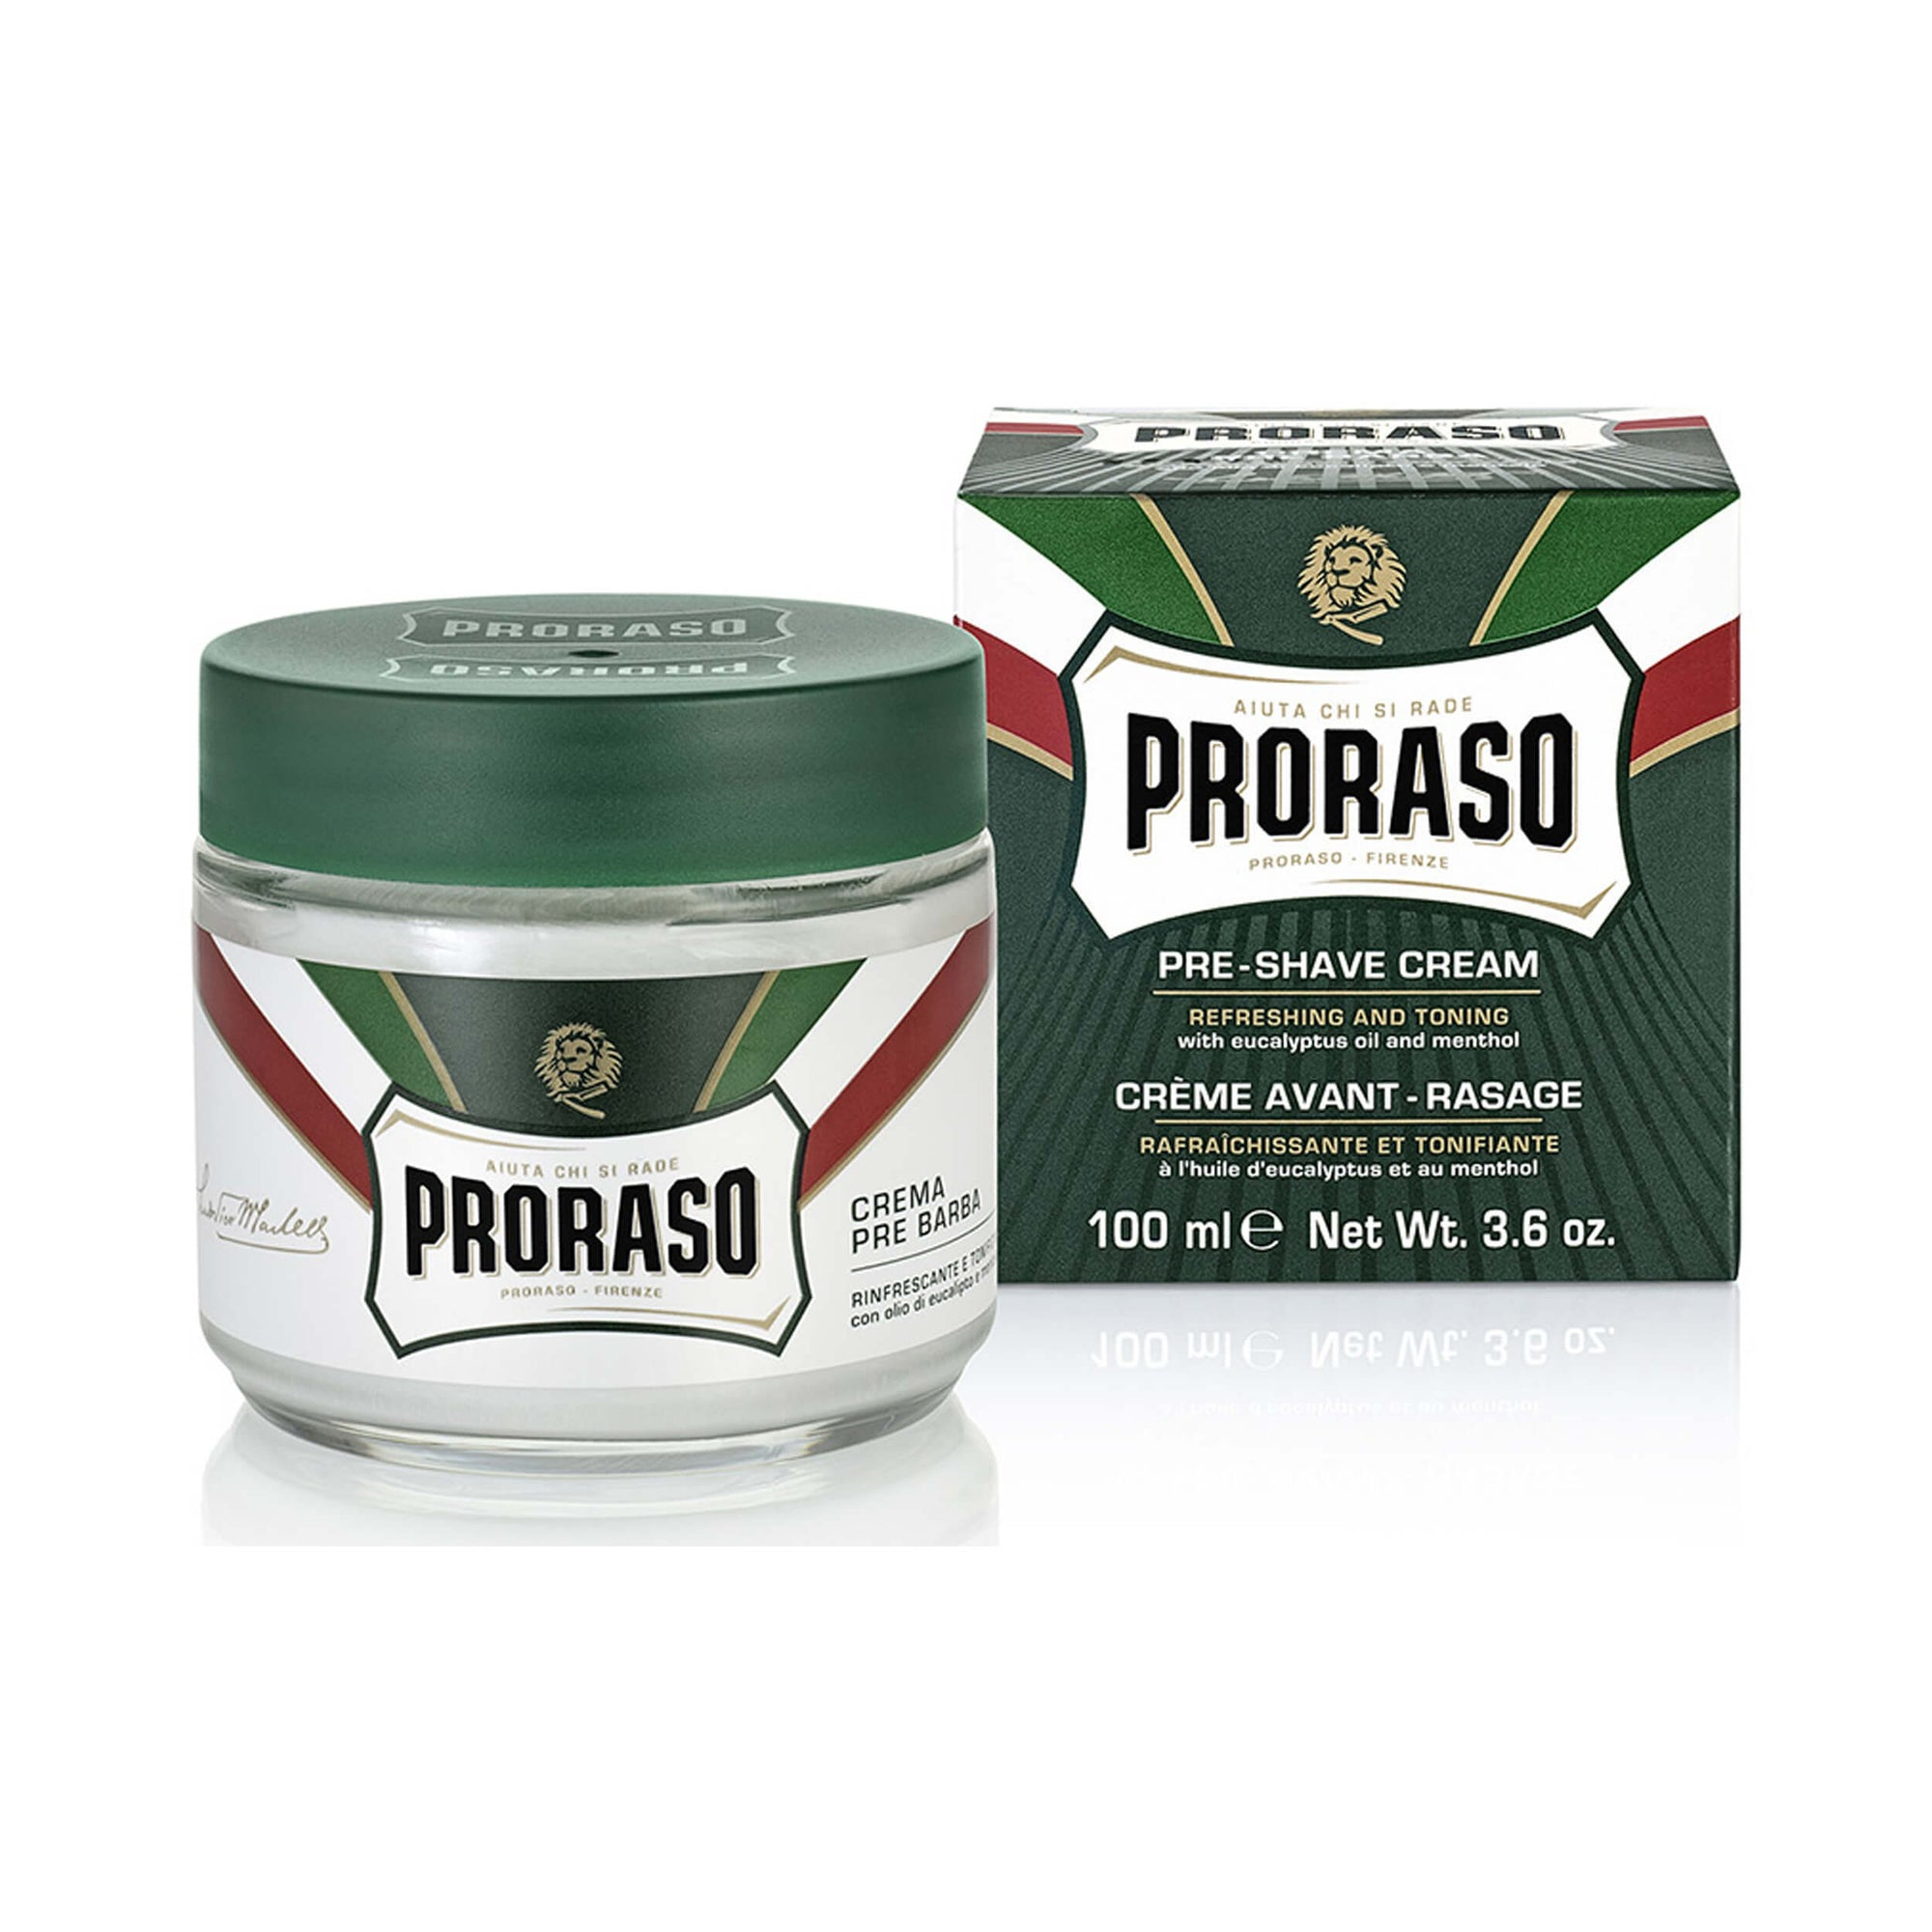 Proraso Pre-Shave Cream - Refreshing and Toning 100 mL